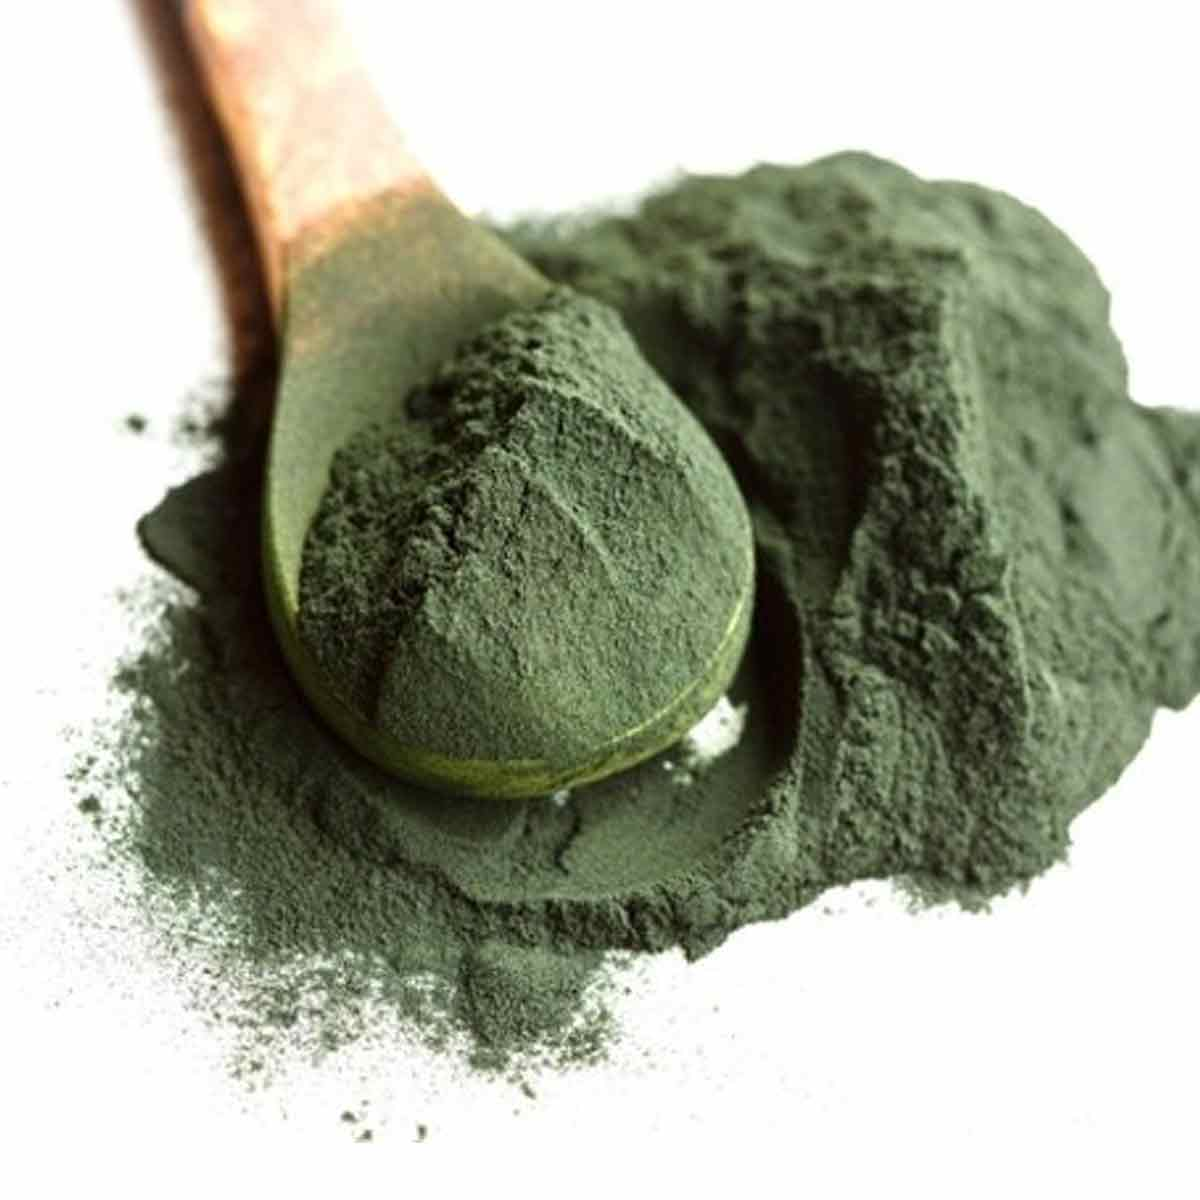 6 Top Reasons To Try Spirulina